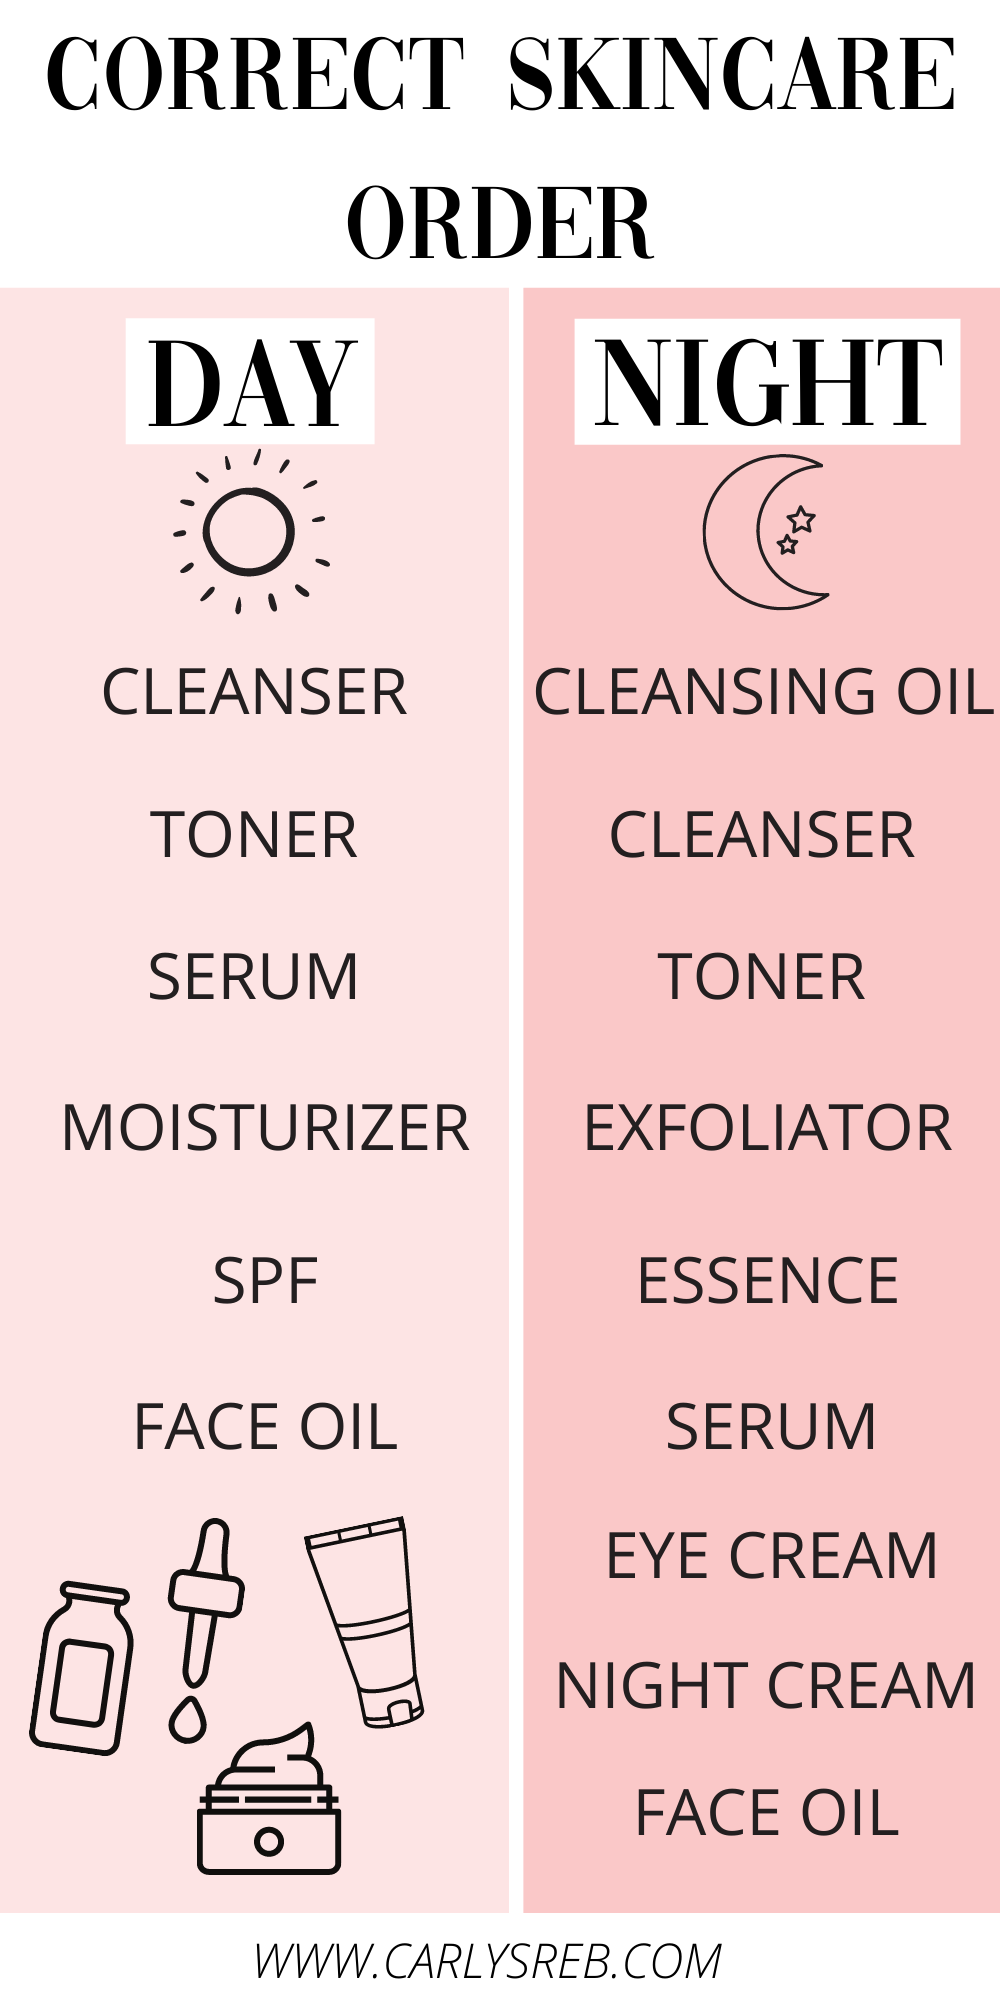 How To Take Care Of Your Skin In Your 20s Best Skin Care Regimen Skin Care Order Skin Care Routine 30s